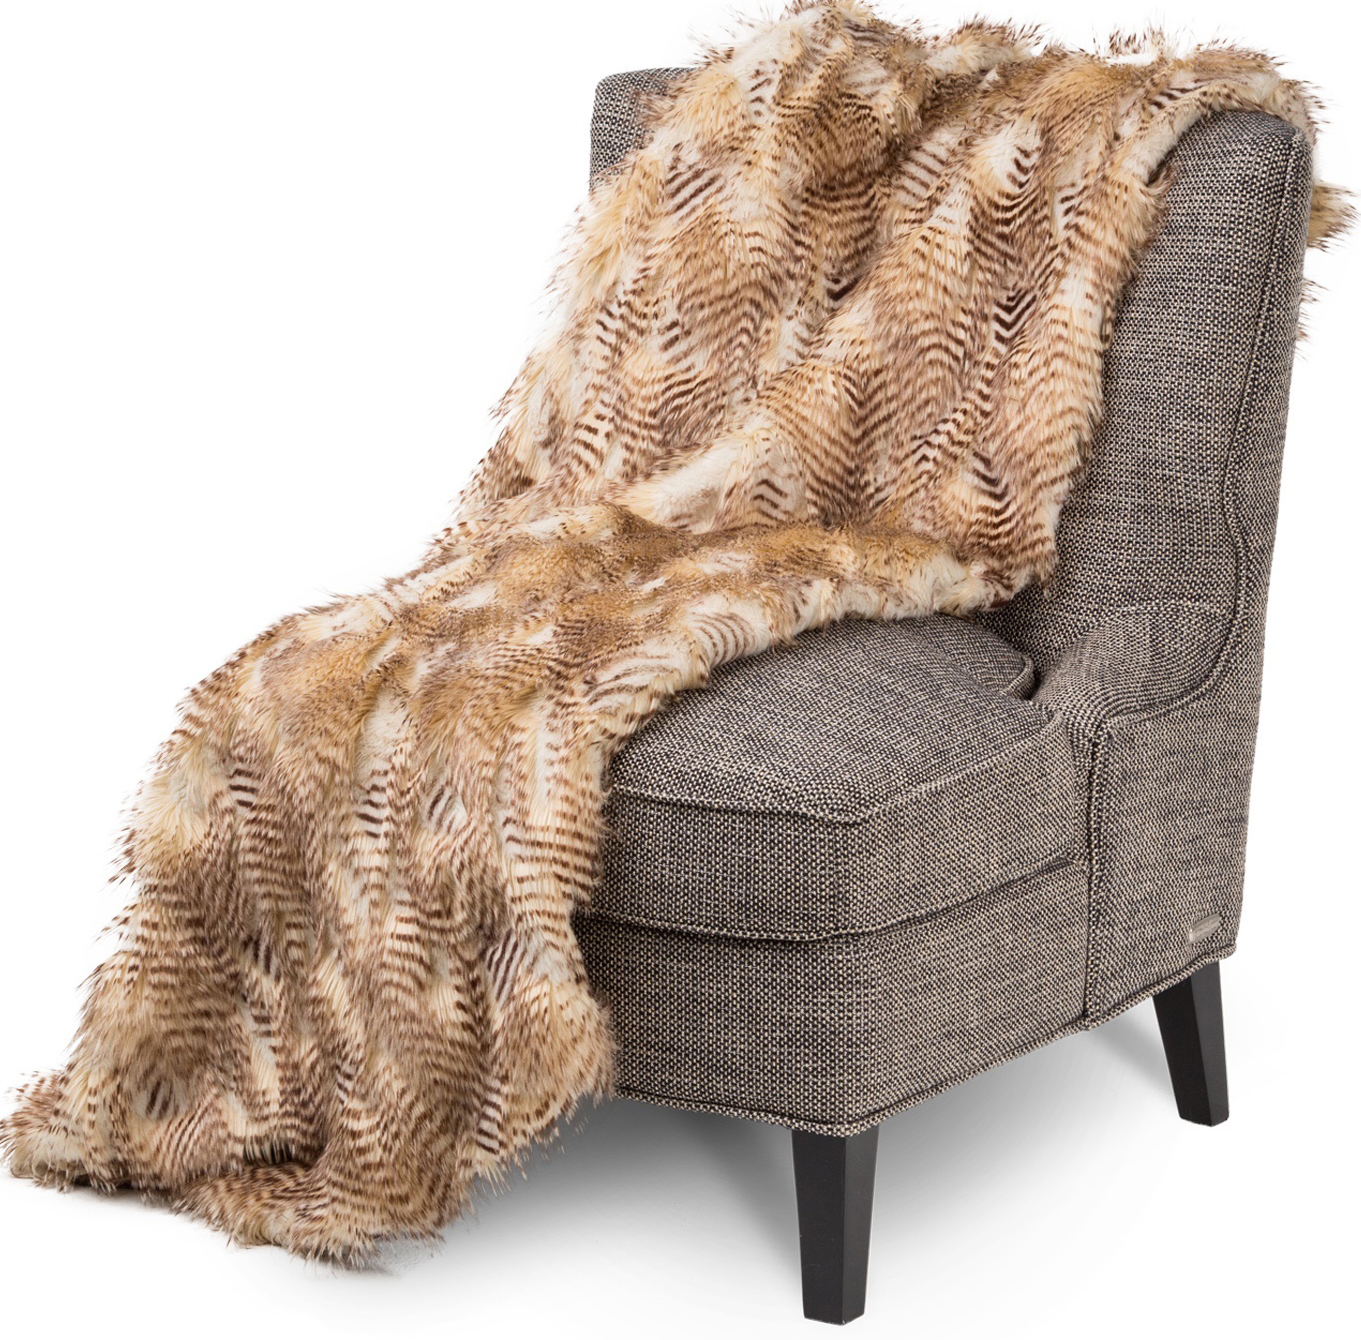 Breckenridge Throw Blanket by Michael Amini